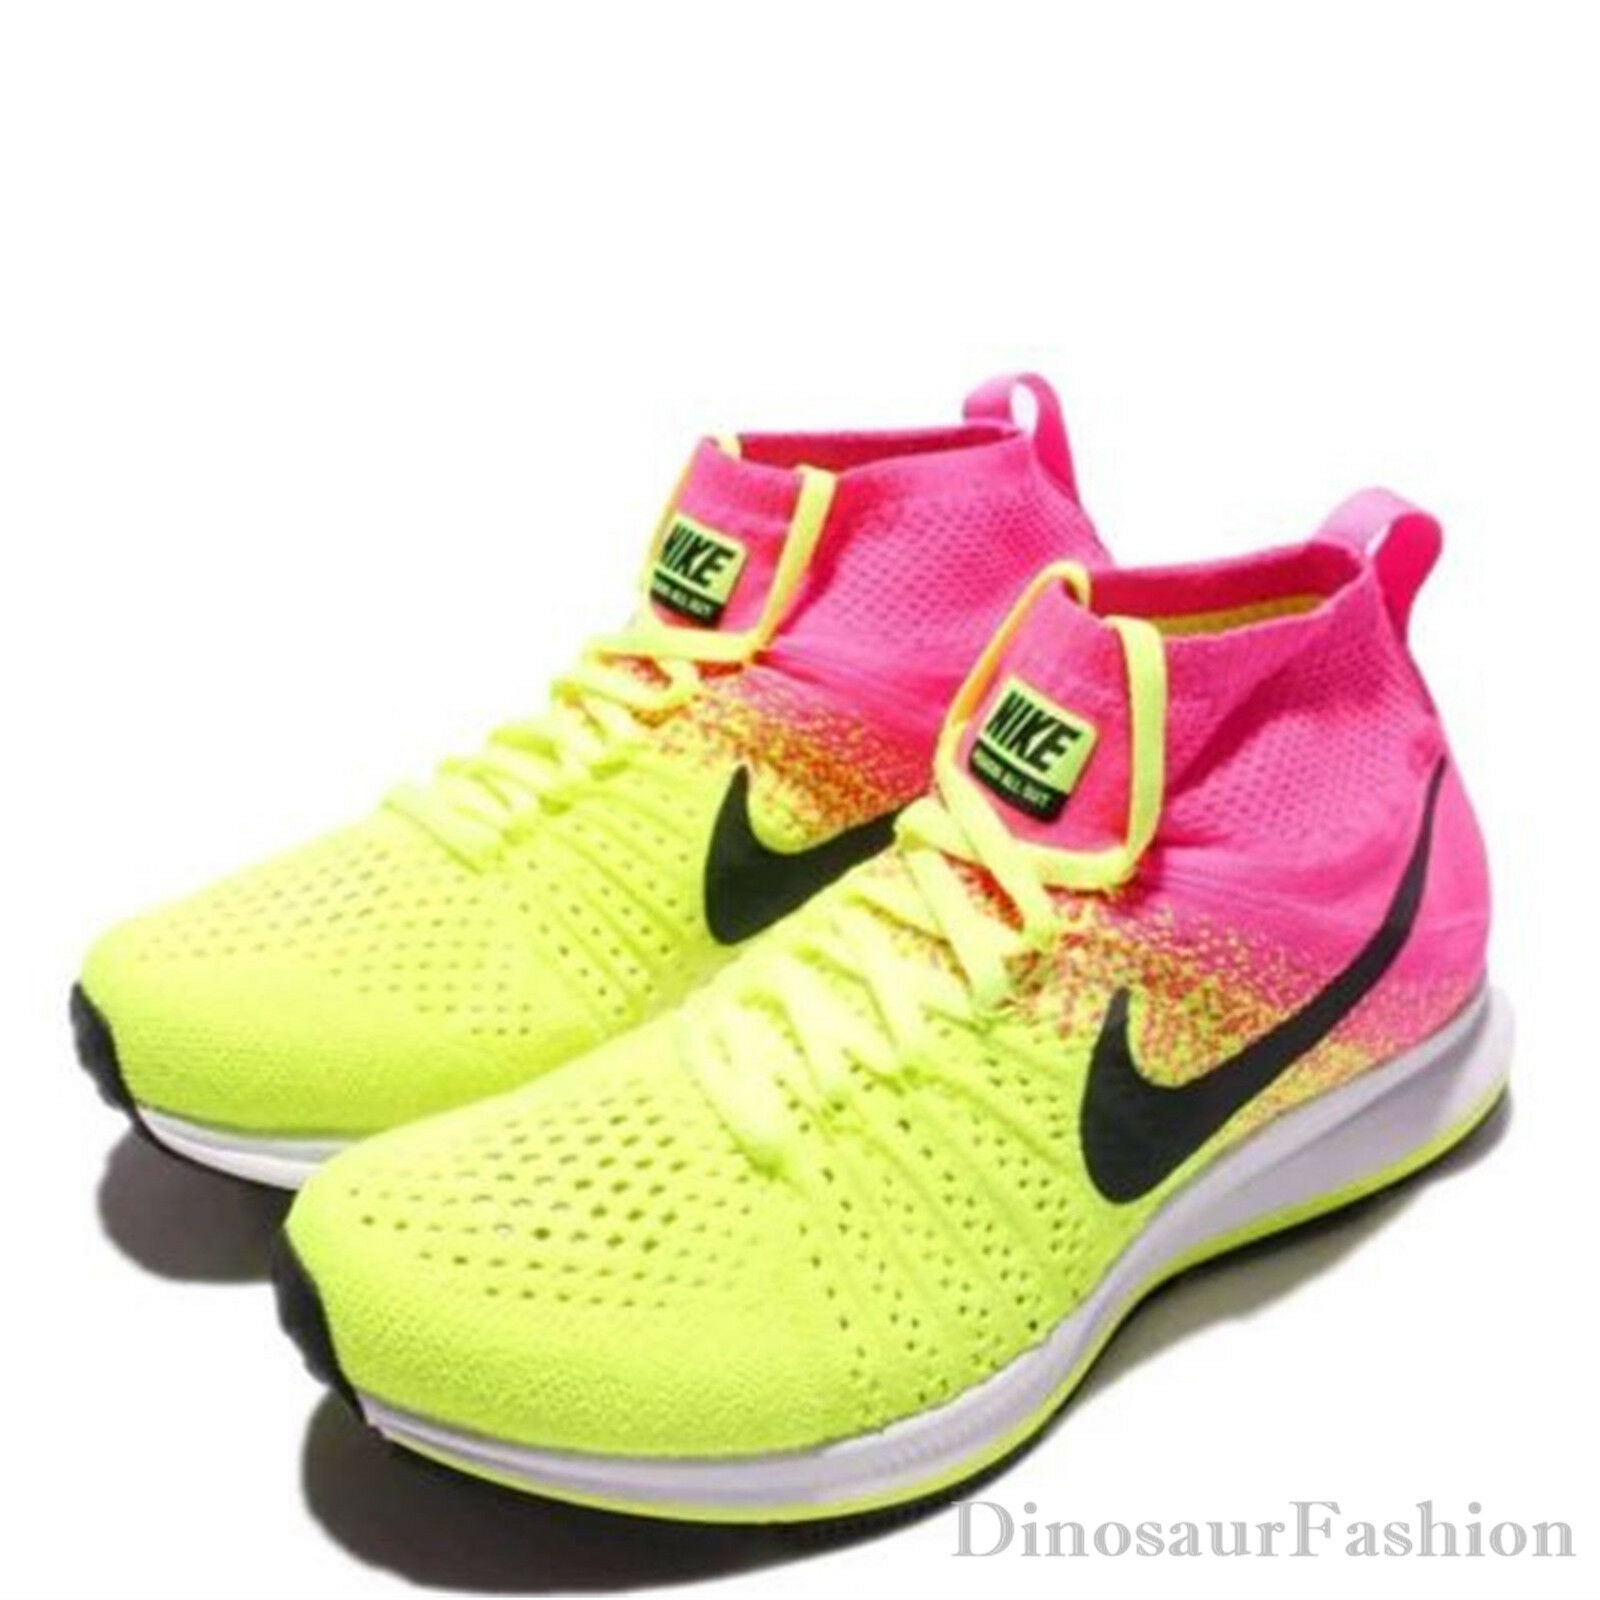 NIKE  ZM PEGASUS  NIKE ALL OUT FLYKNIT OC(GS),<848788-700> WOMEN'S RUNNING Shoes,NWB. 305367